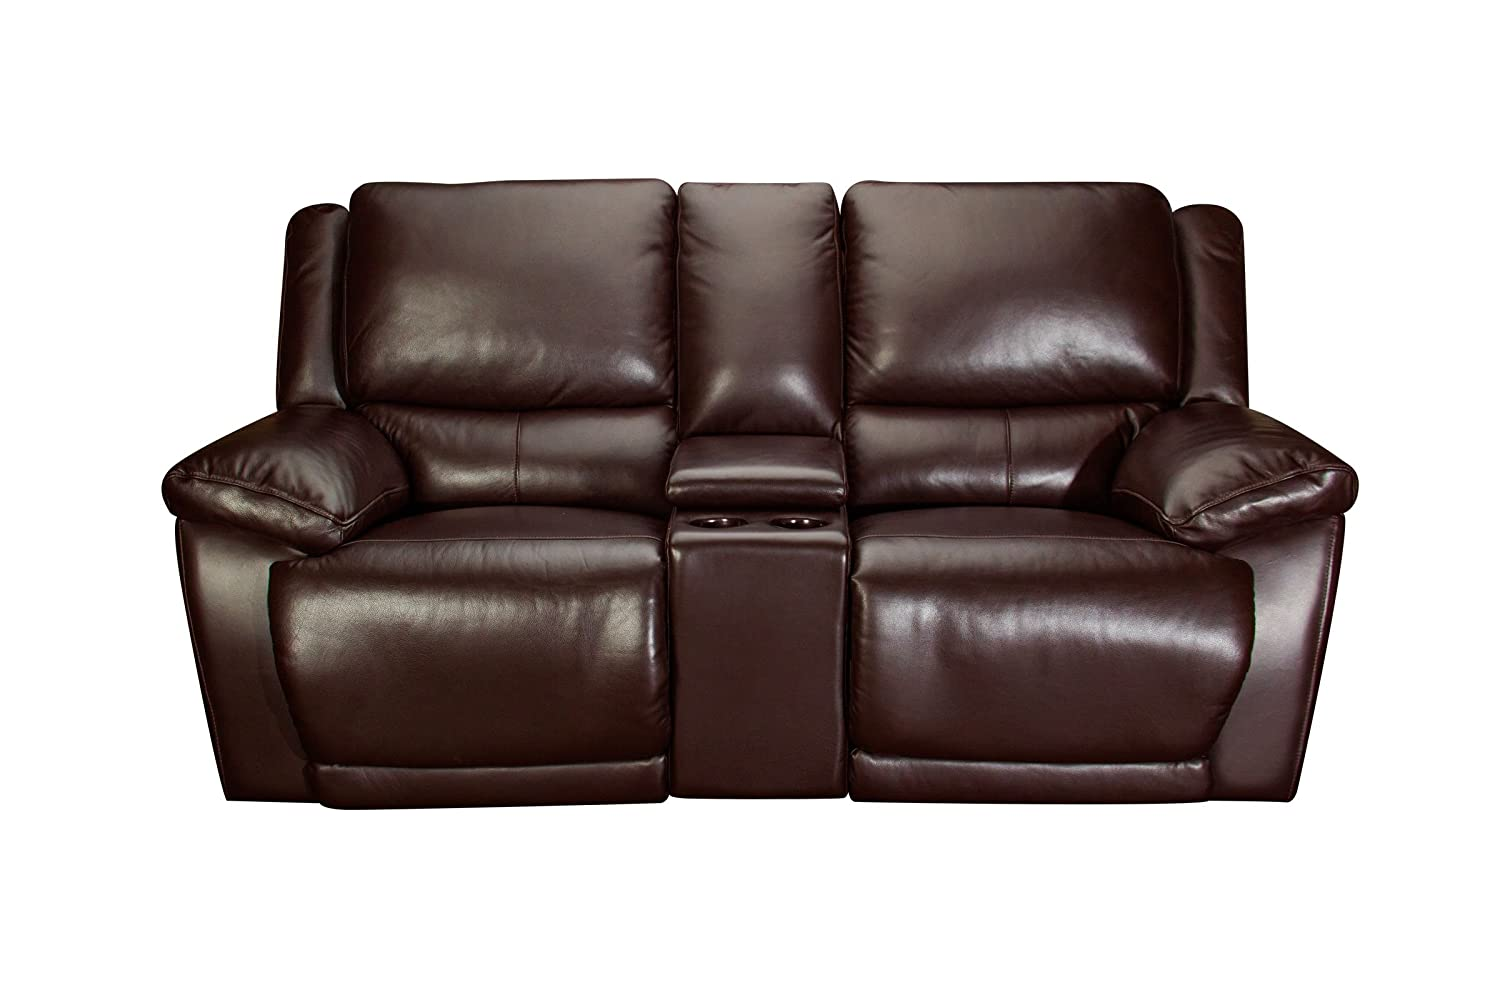 Amazon.com: Creed Leather Power Reclining Loveseat with ...